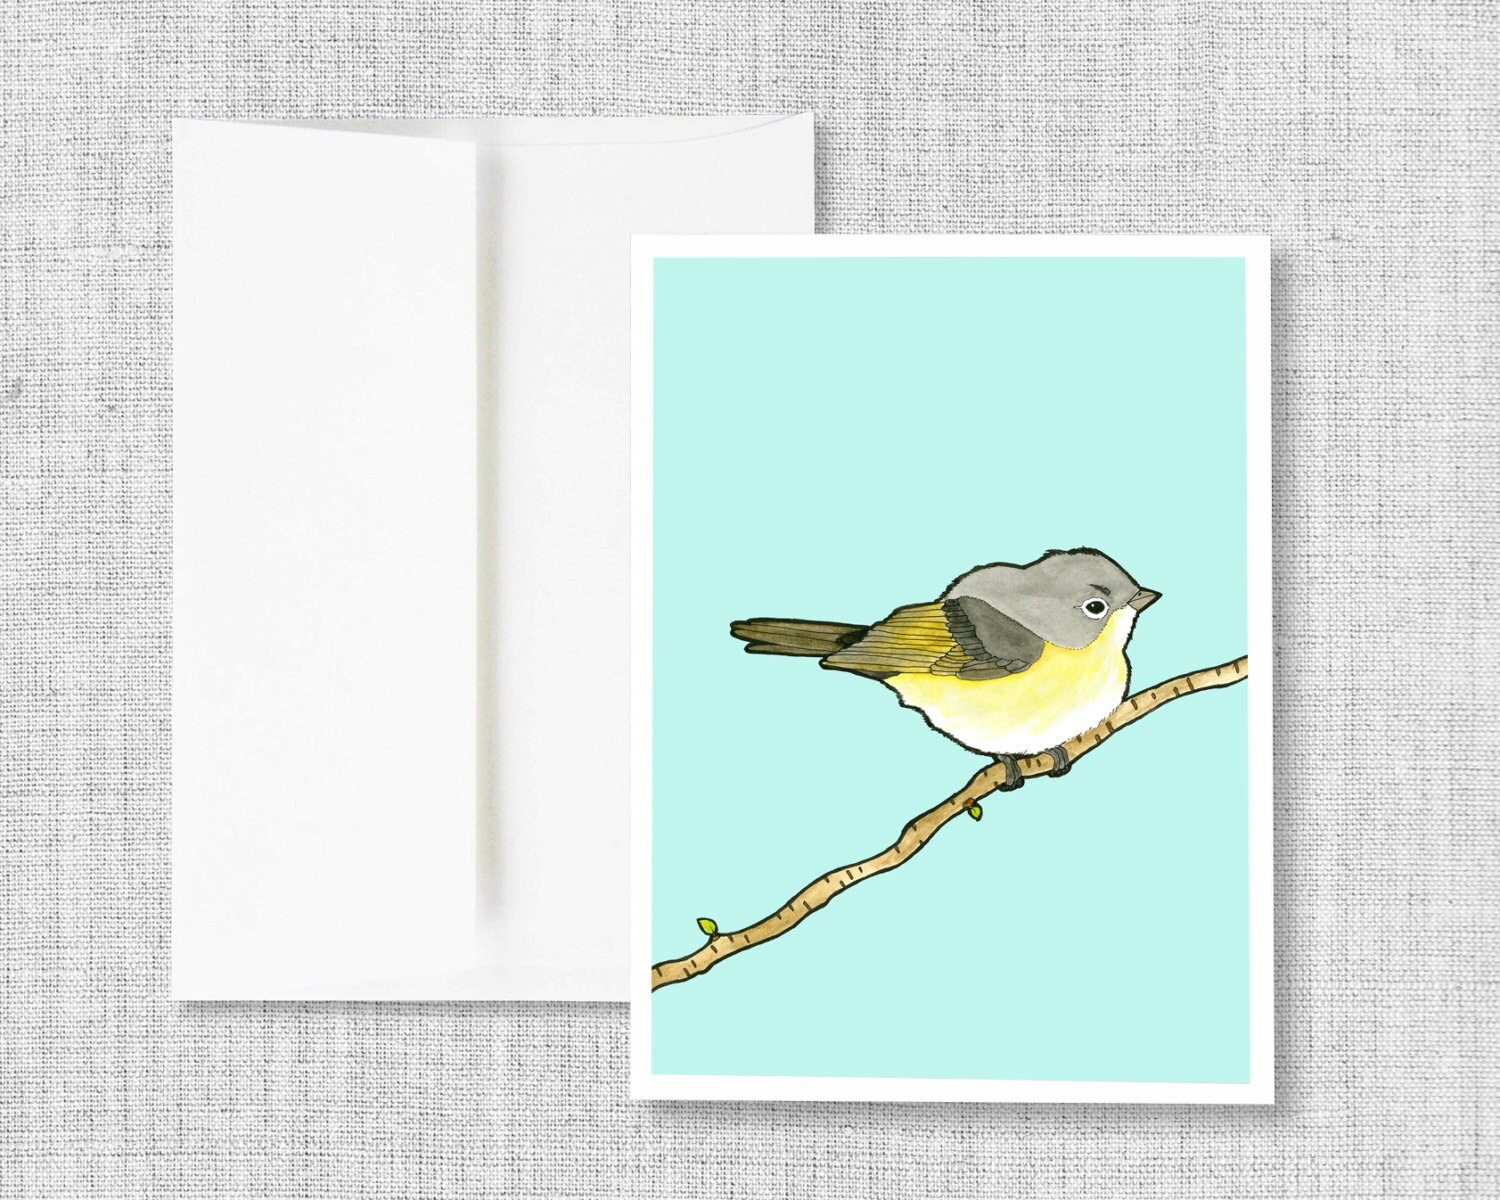 Greeting card blank greeting card greeting card set bird greeting card blank greeting card greeting card set bird watercolor yellow blue drawing blank cards card set american redstart m4hsunfo